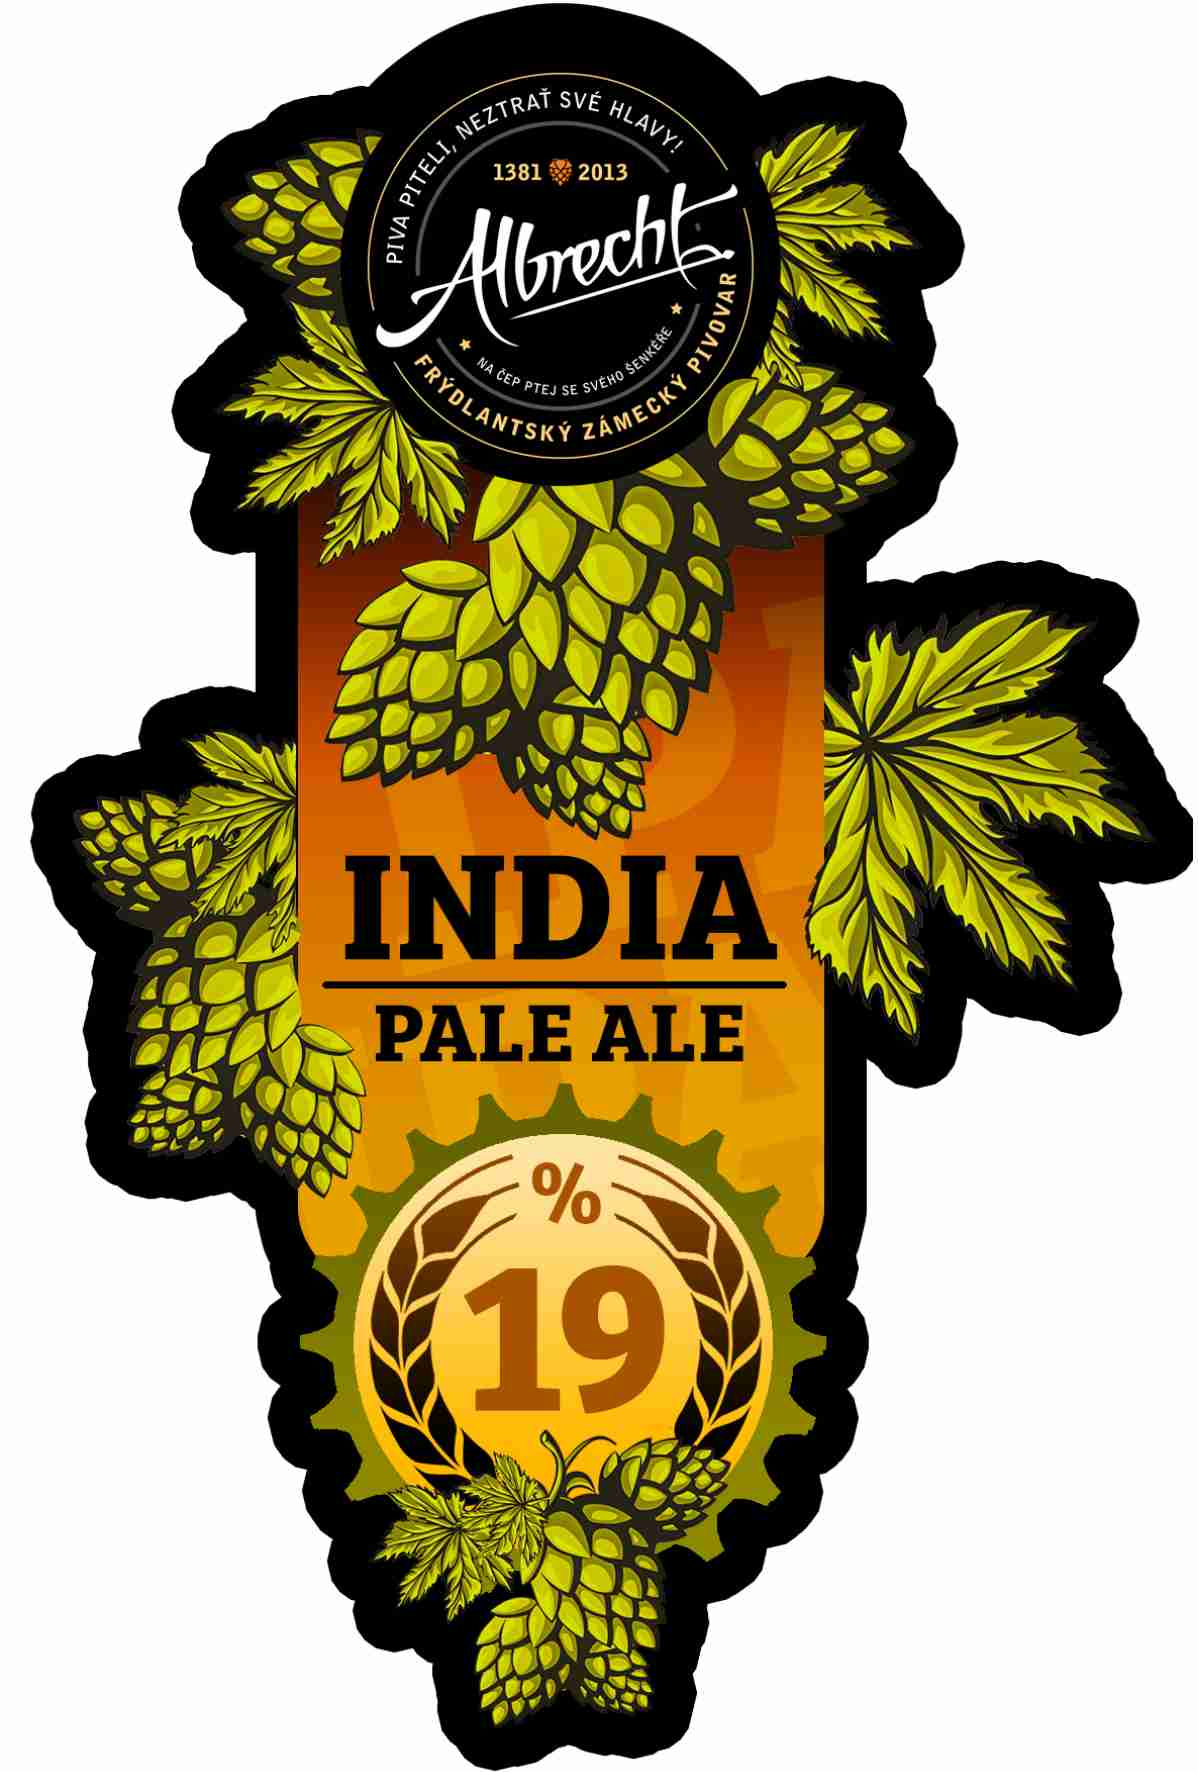 Albrecht India Pale Ale 19 - Double IPA